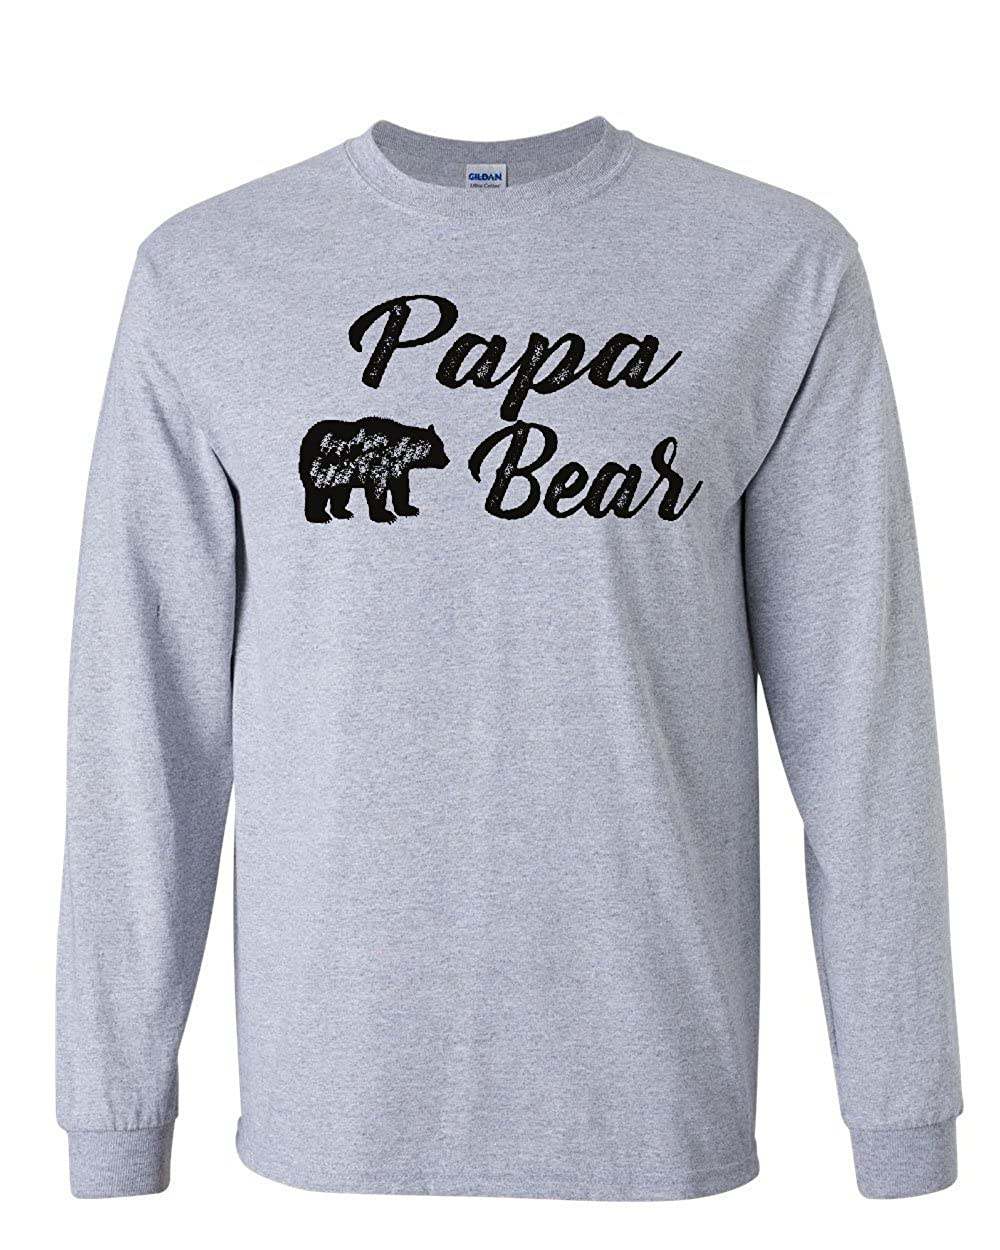 Papa Bear Tshirt For Dad Fathers Day Protector Of The Family Tee